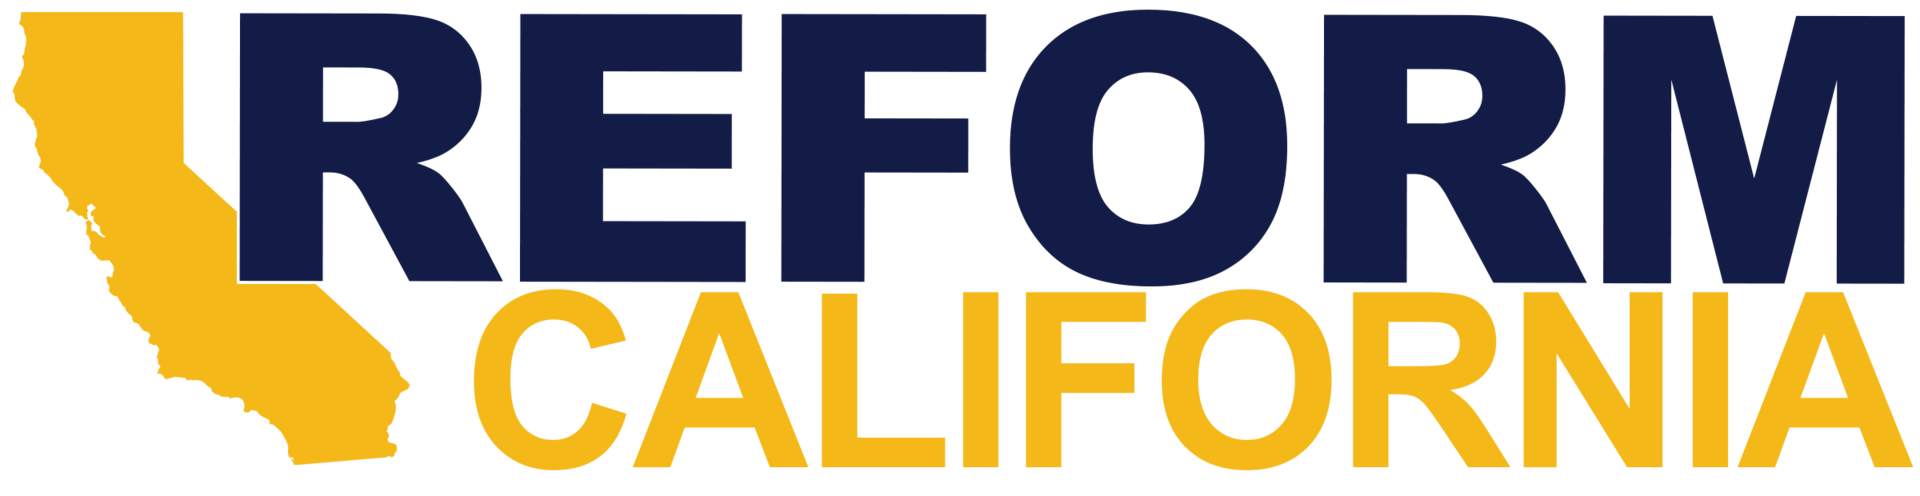 Reform california logo new color